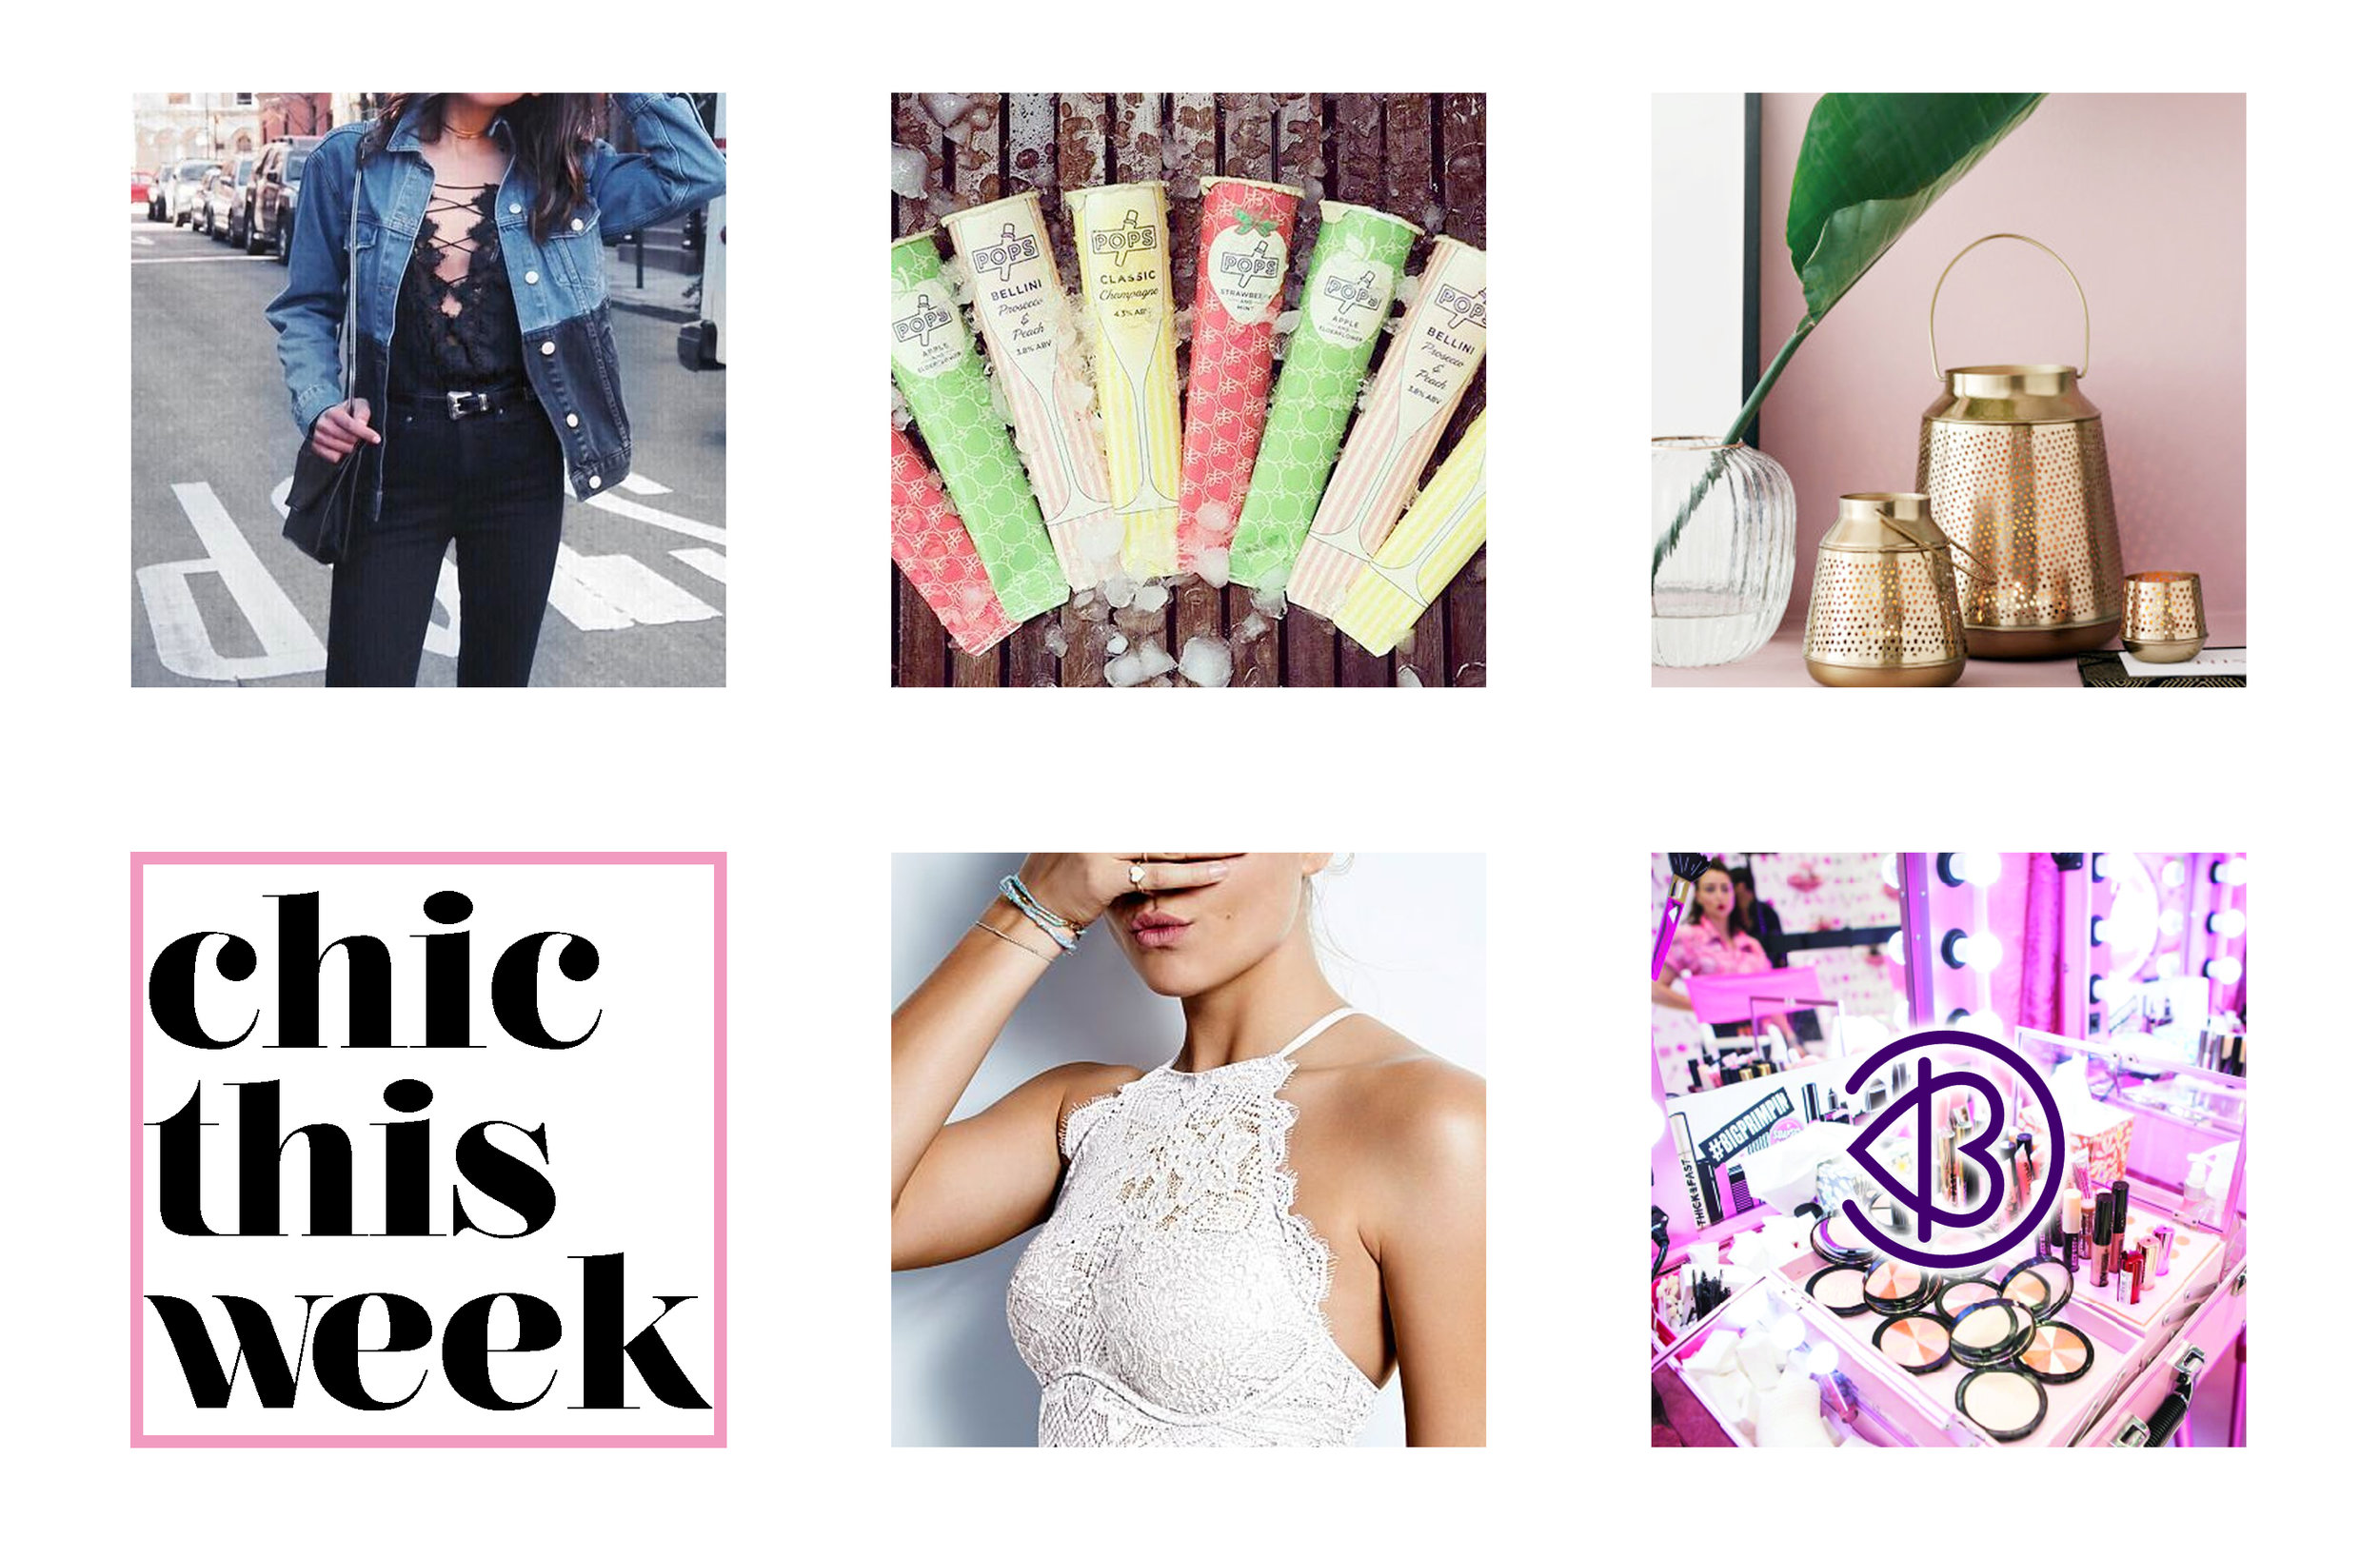 What's chic this week? (Issue 039)